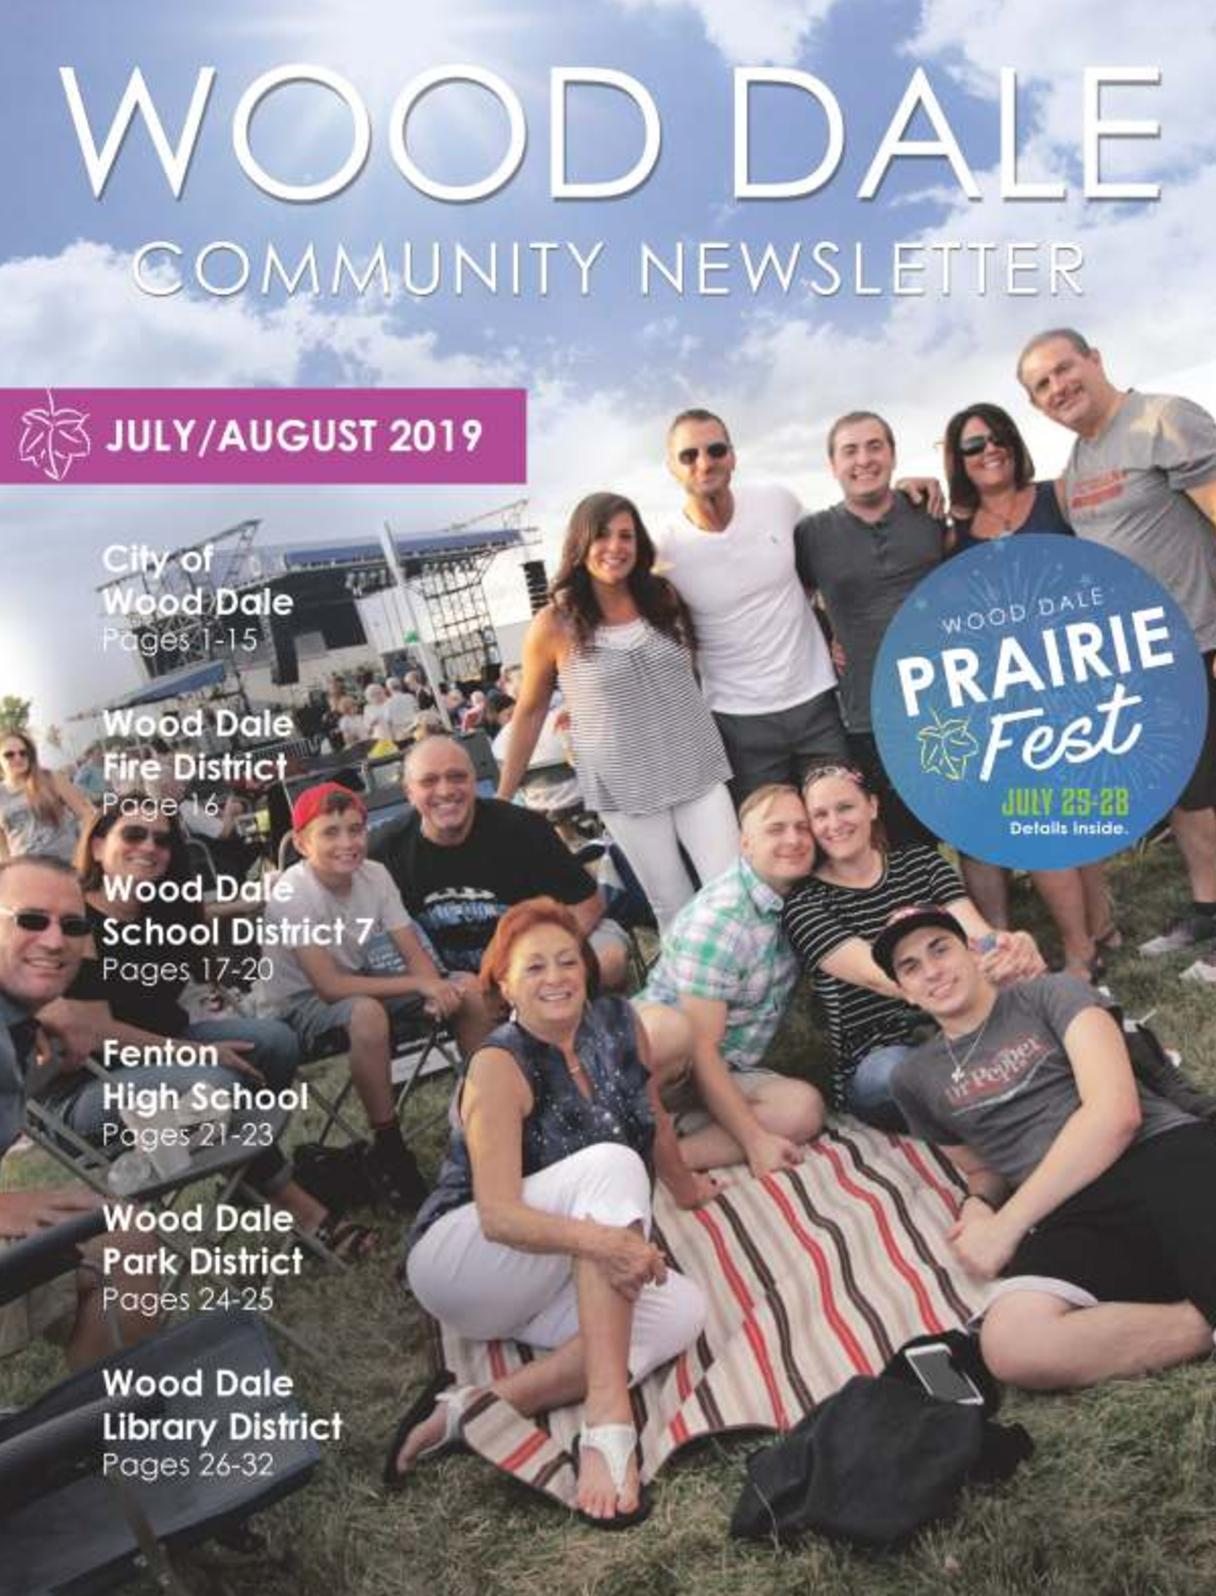 Wood Dale Community Newsletter July/August 2019